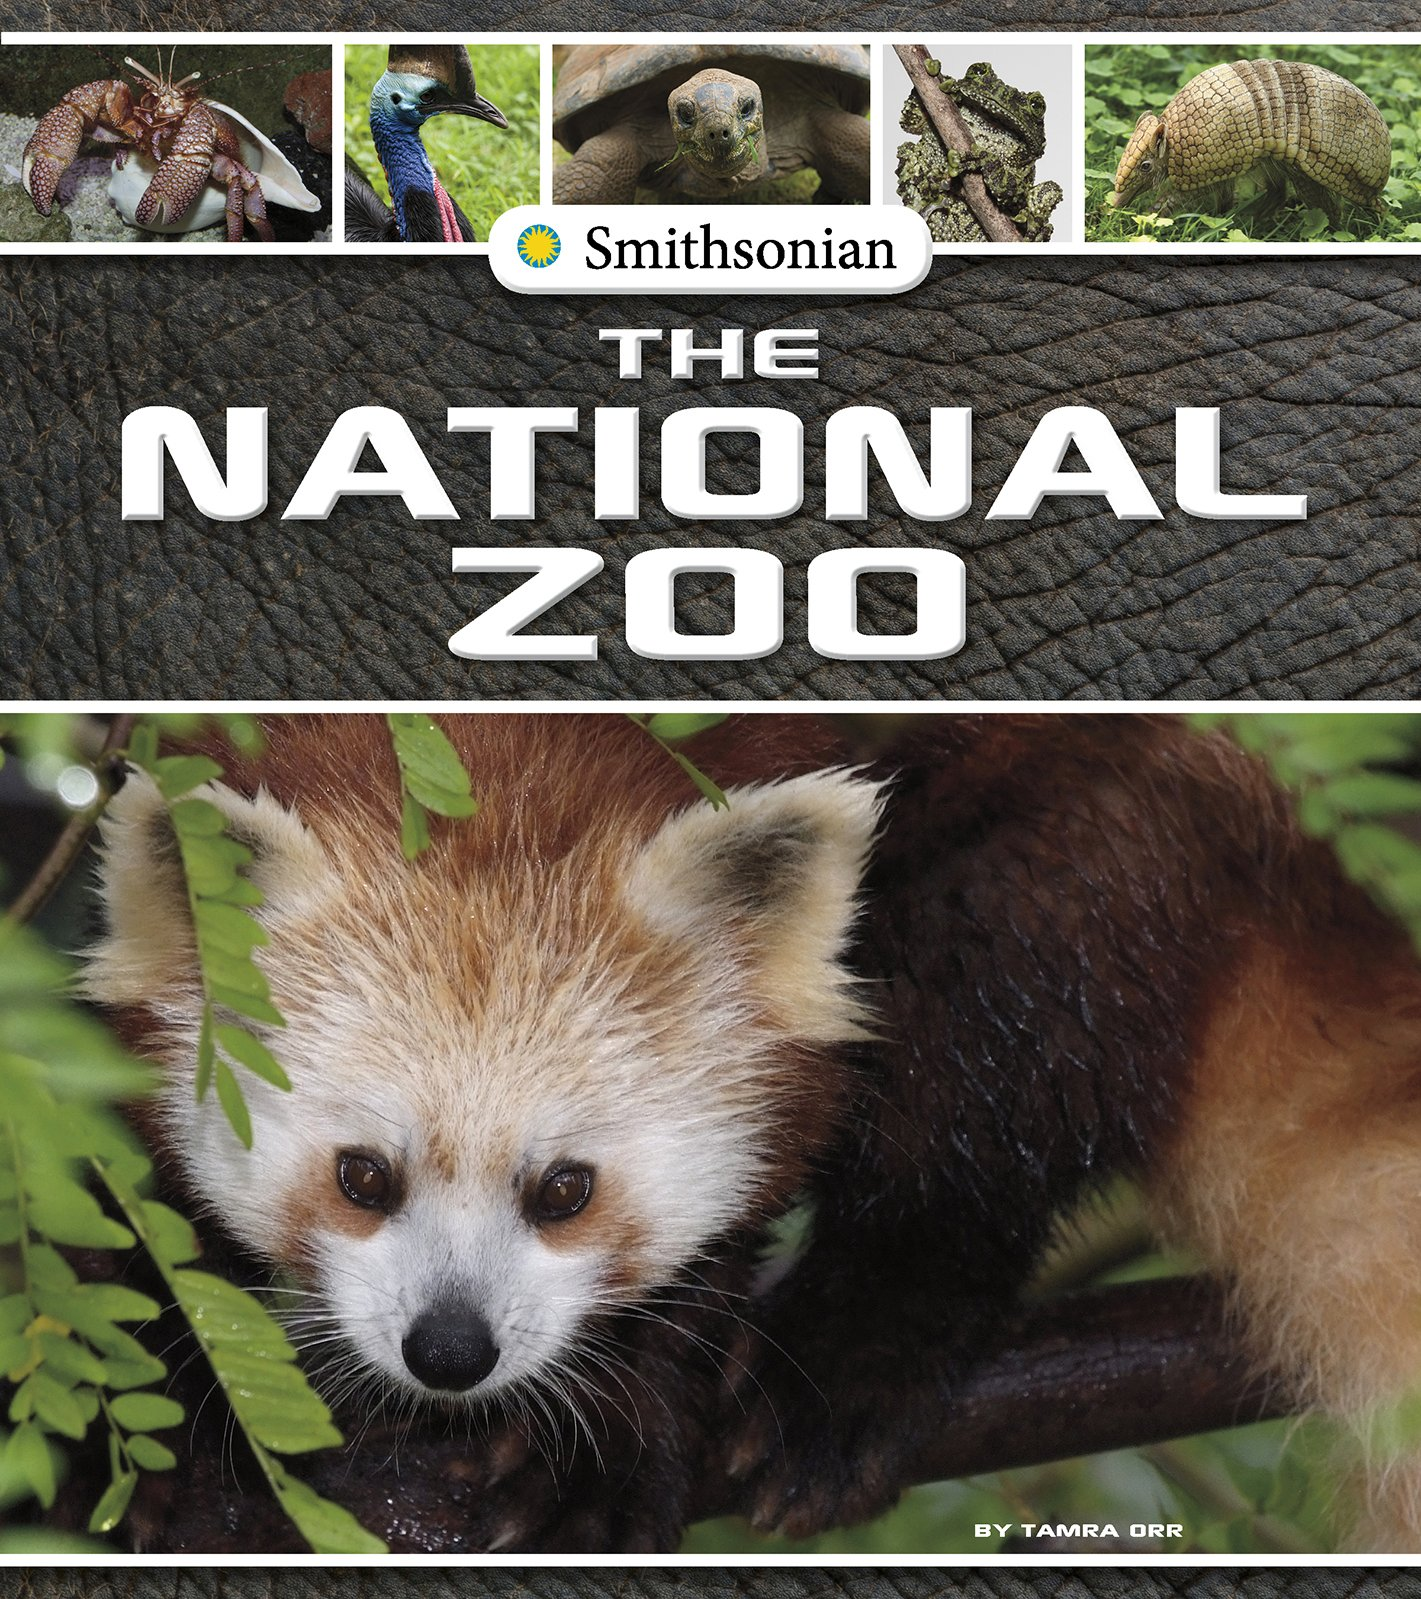 The National Zoo and Conservation Biology Institute (Smithsonian title with animals around the title